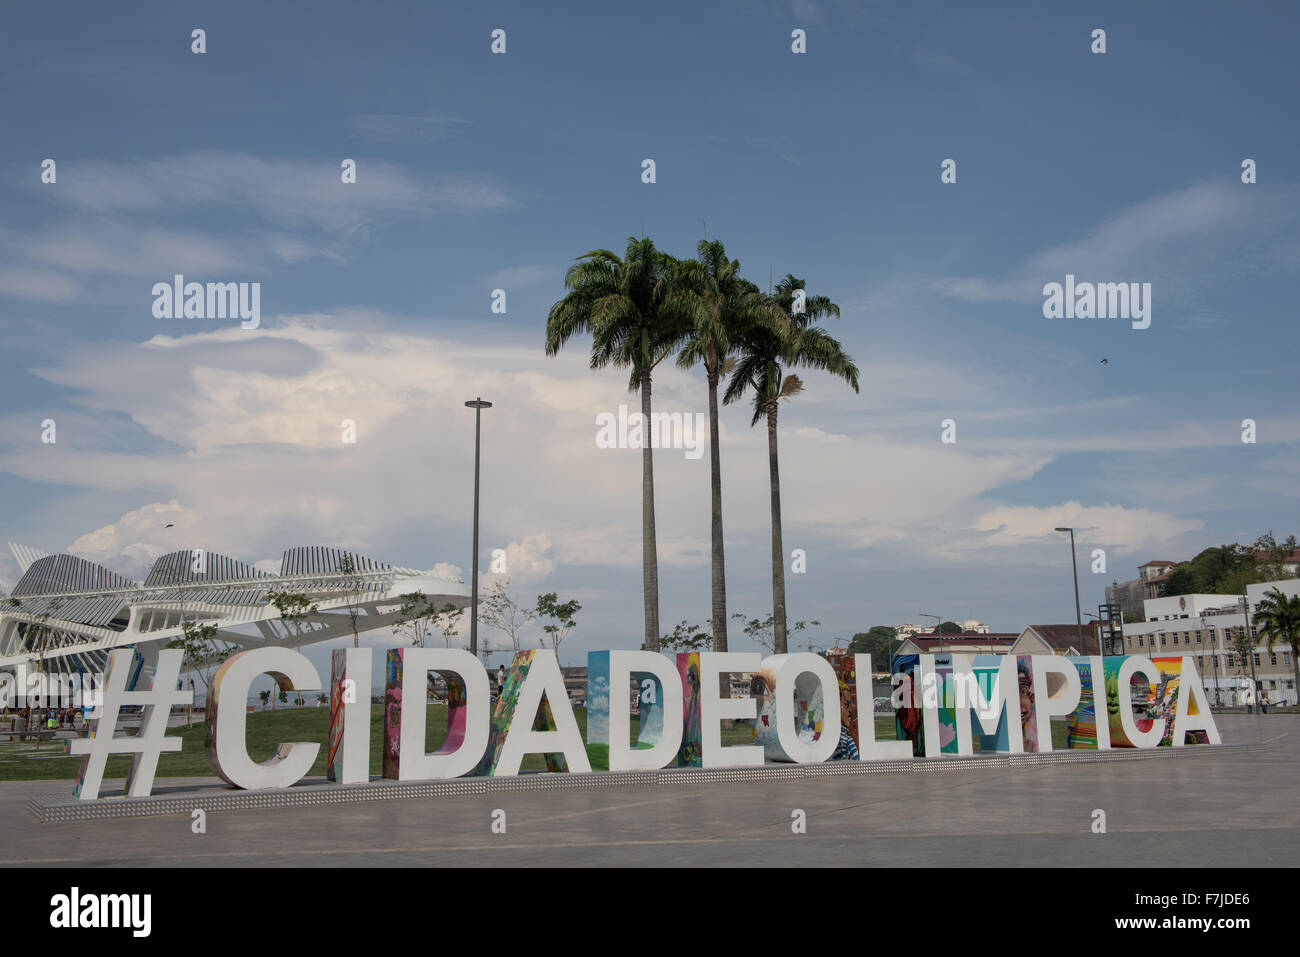 View of Praça Mauá with the #CIDADEOLIMPICA sign prominent in front of the Museu do Amanhã (Museum - Stock Image